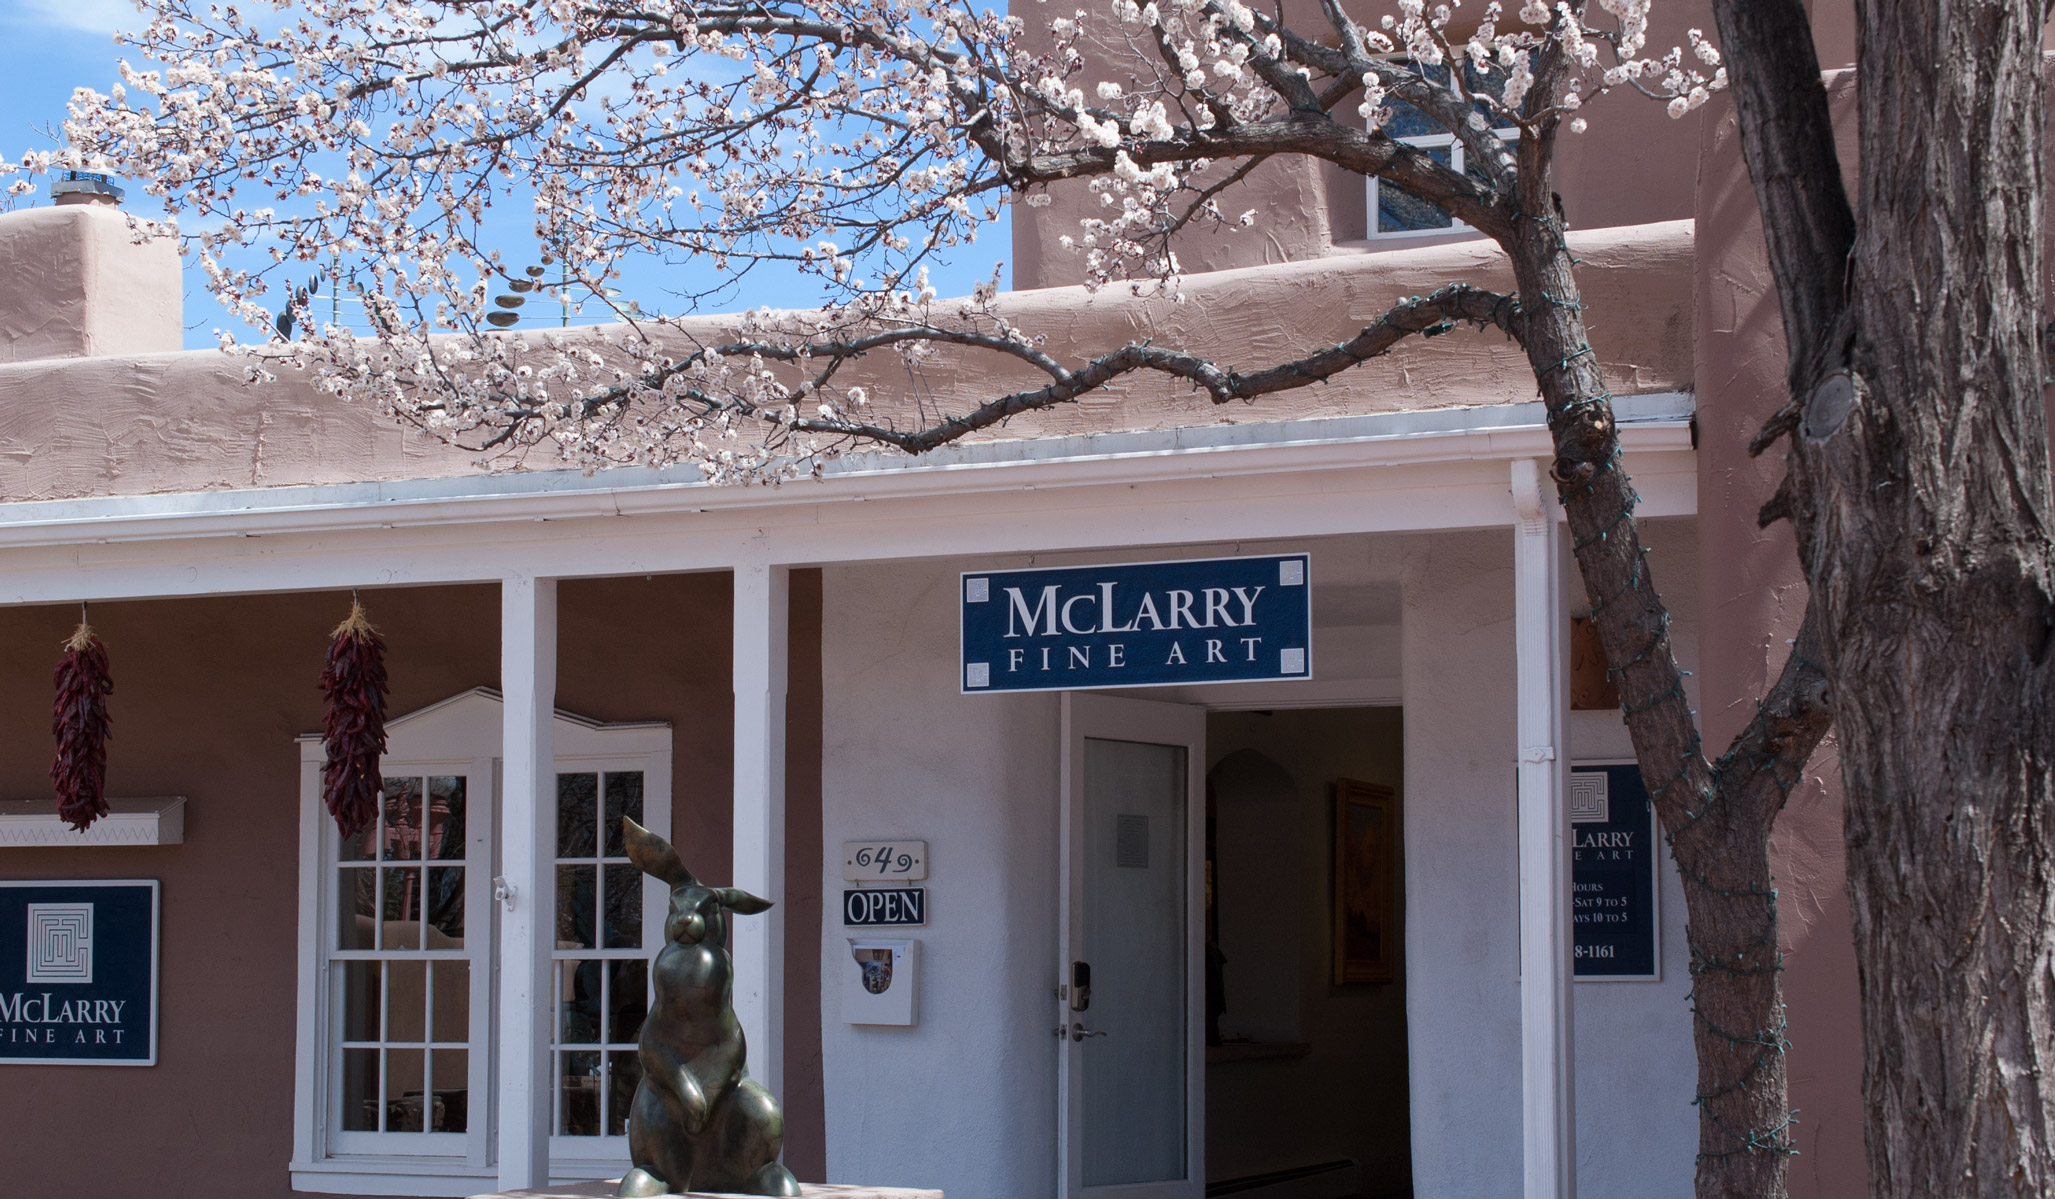 McLarry Fine Art gallery in Santa Fe New Mexico